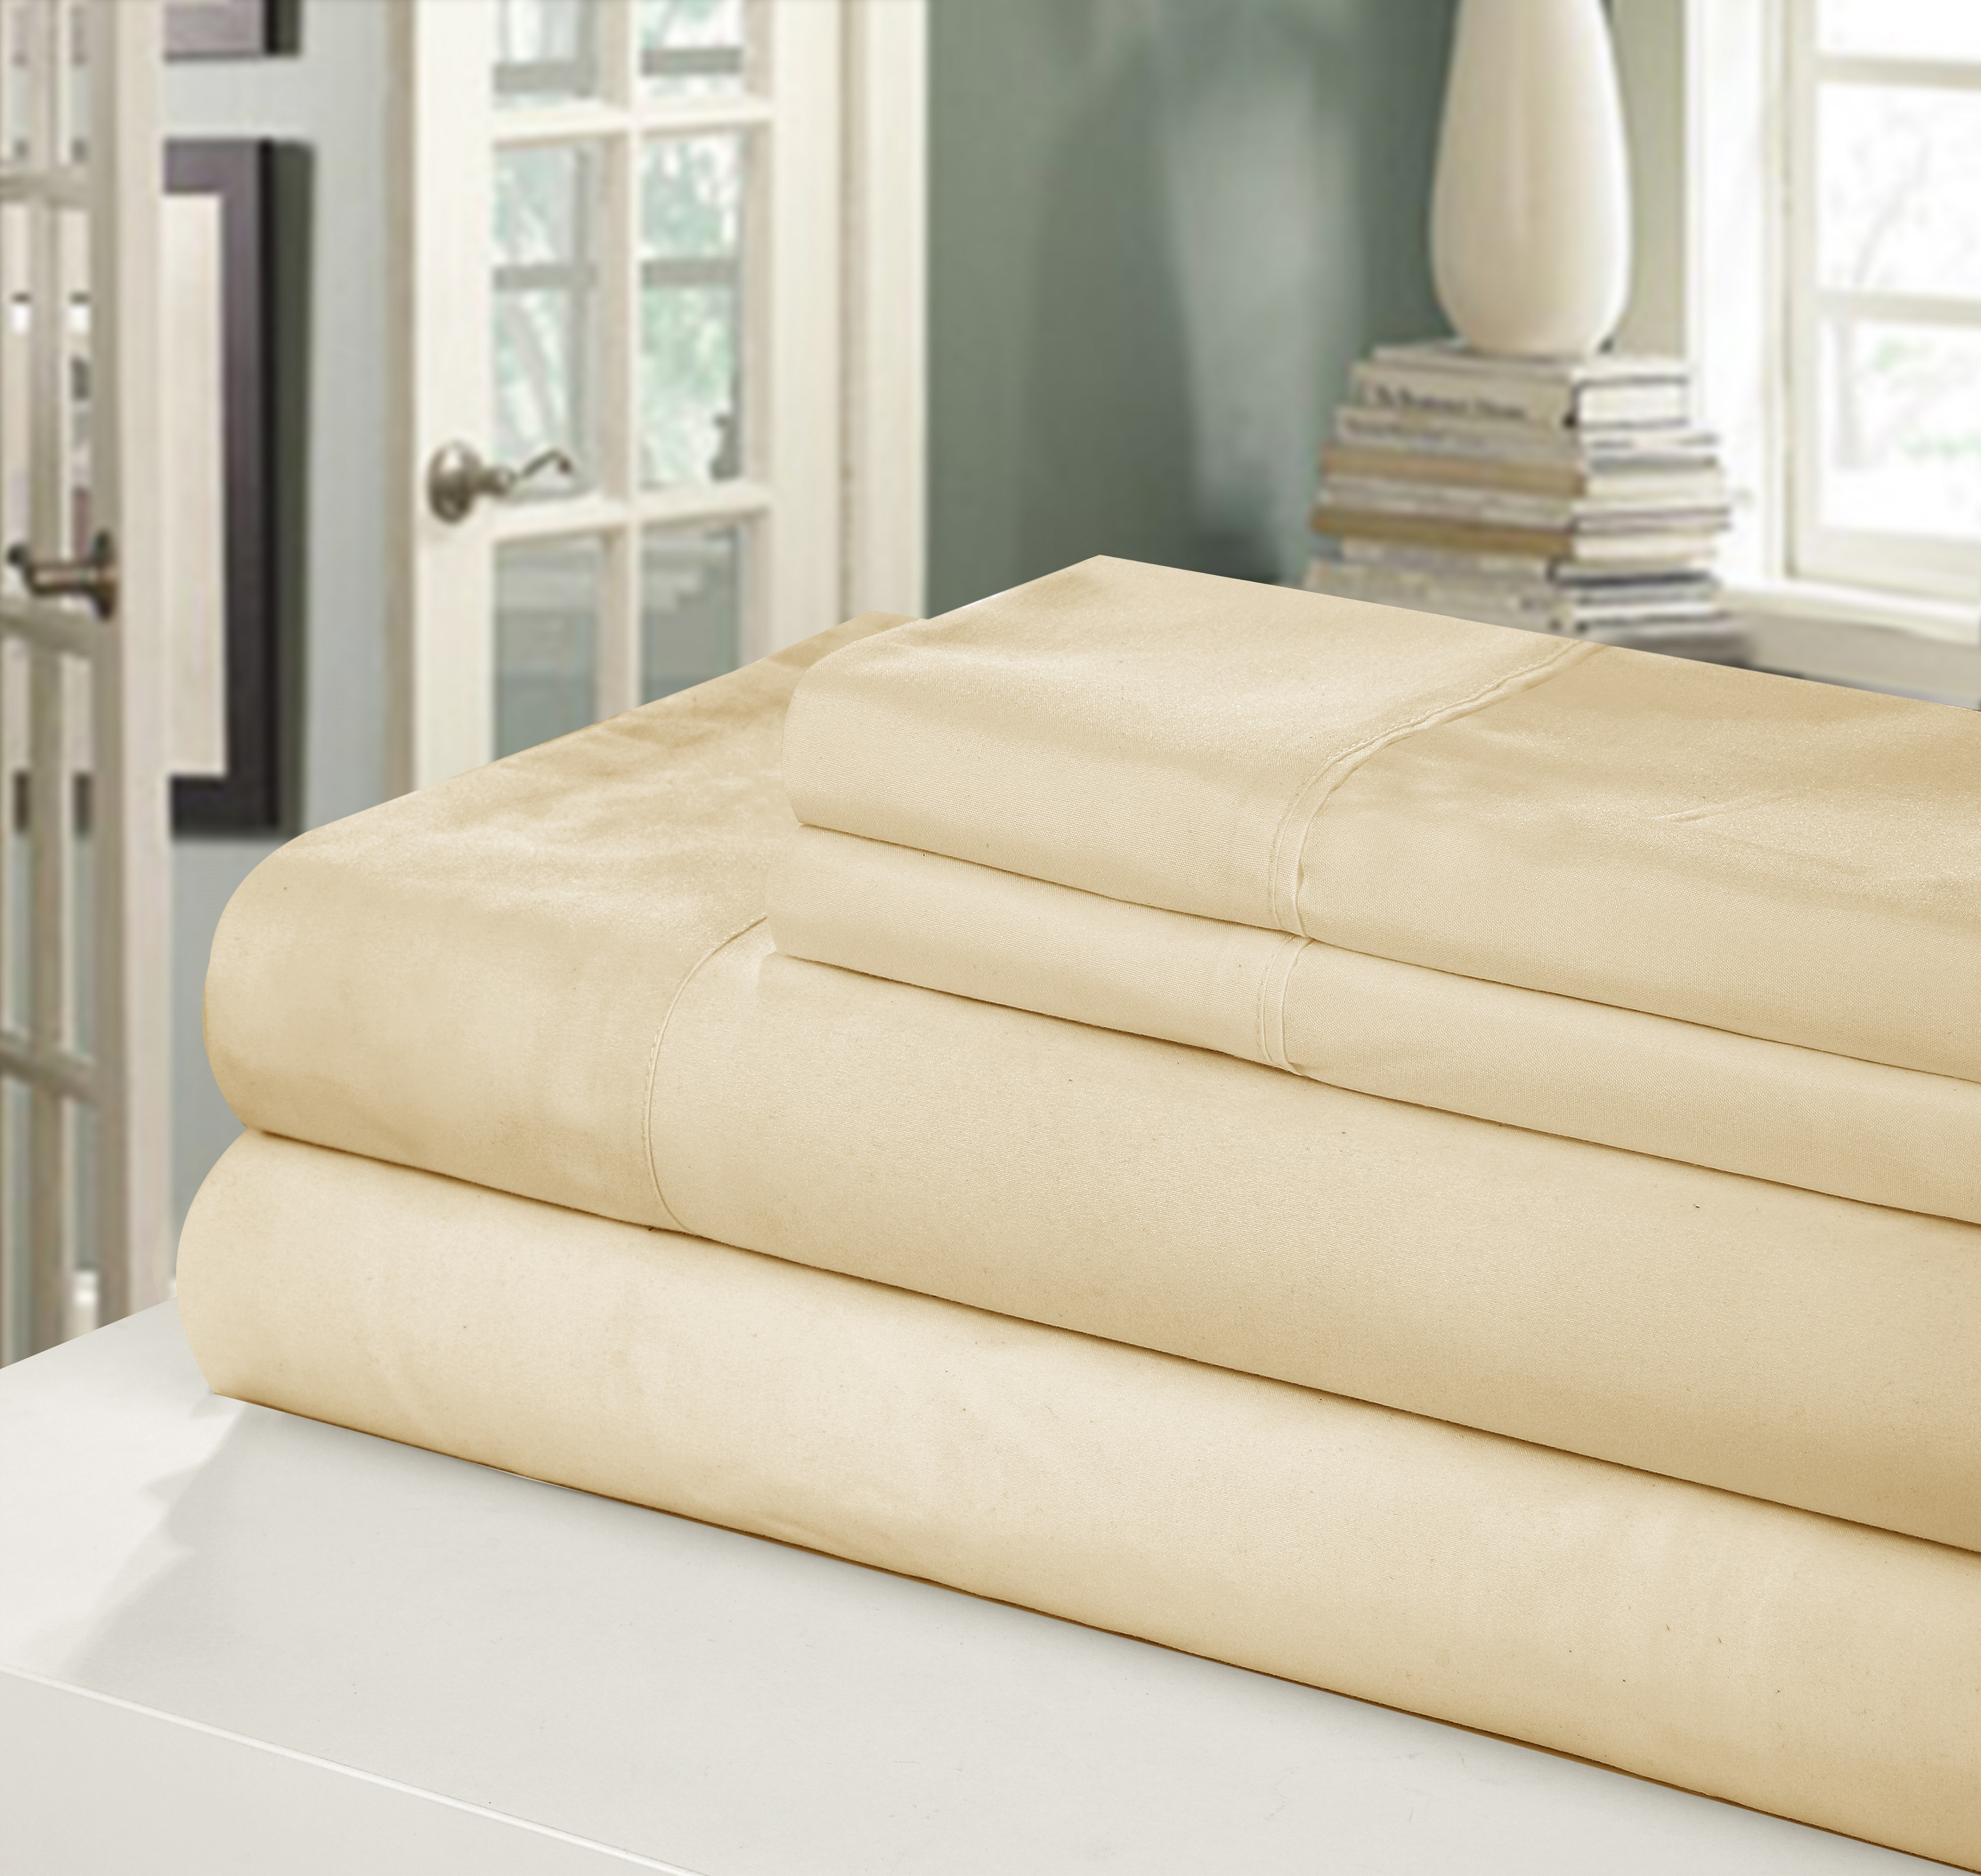 Chic Home NEW!! Chic Home 400 Series Peach Skin Microfiber 4-Piece Sheet Set Ensemble, King, Sand